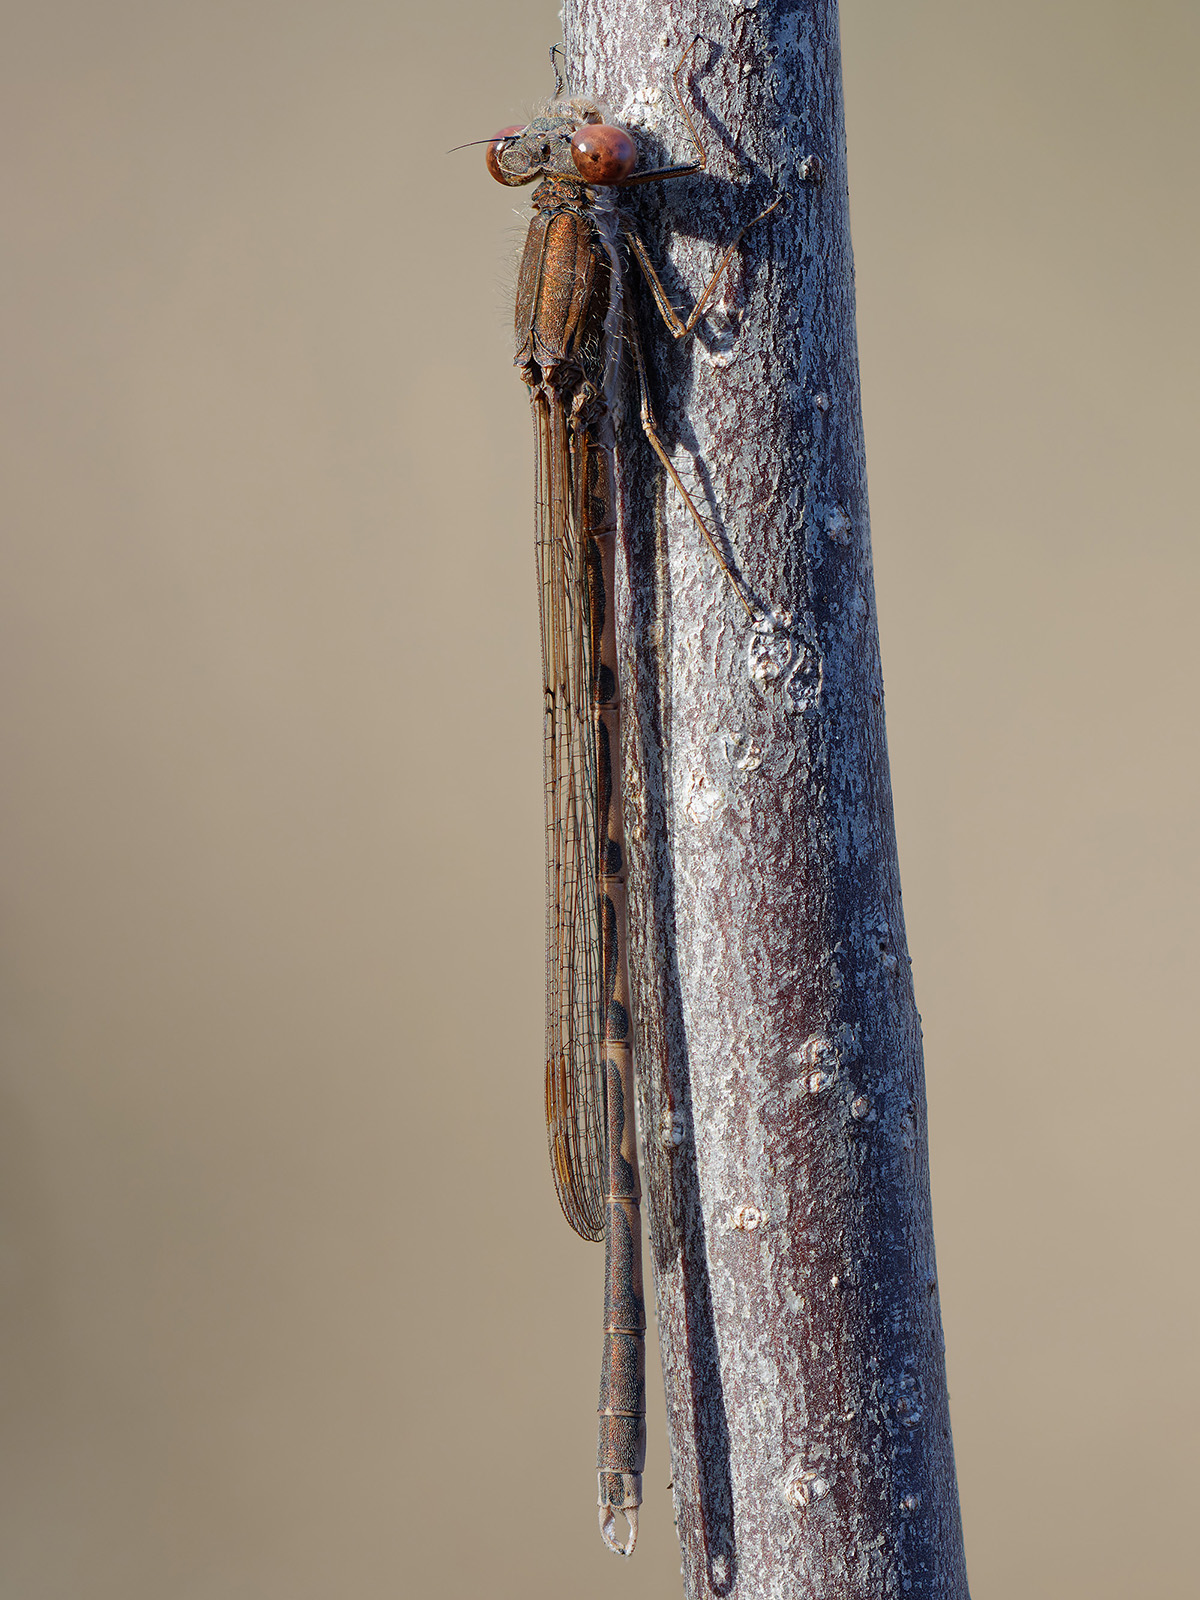 Sympecma fusca, male died during hibernation